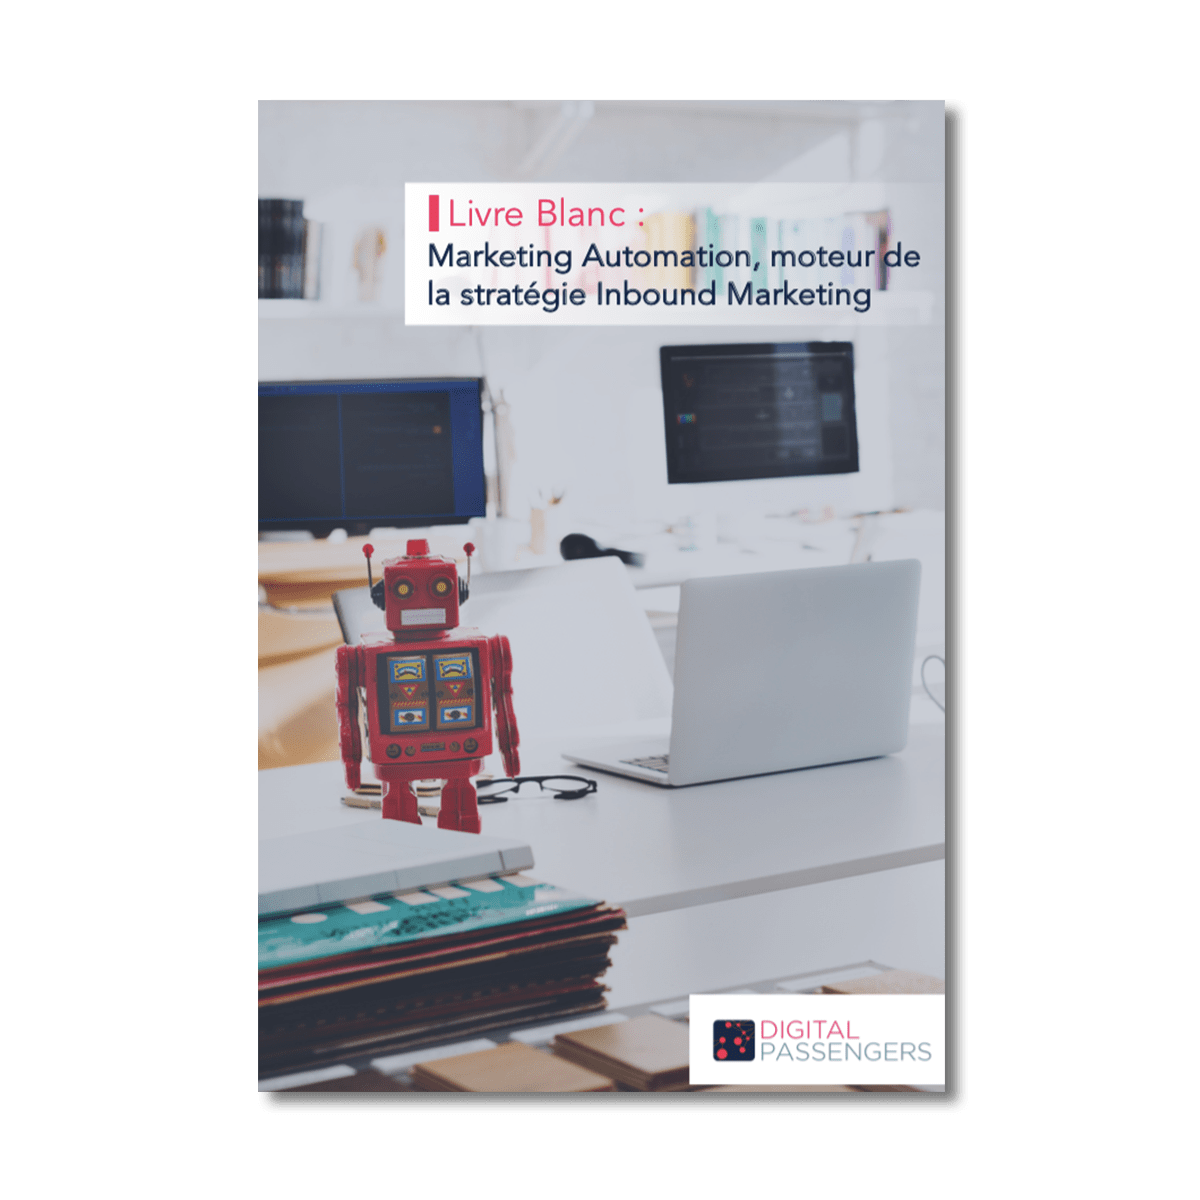 livre-blanc-marketing-automation-digital-passengers-1